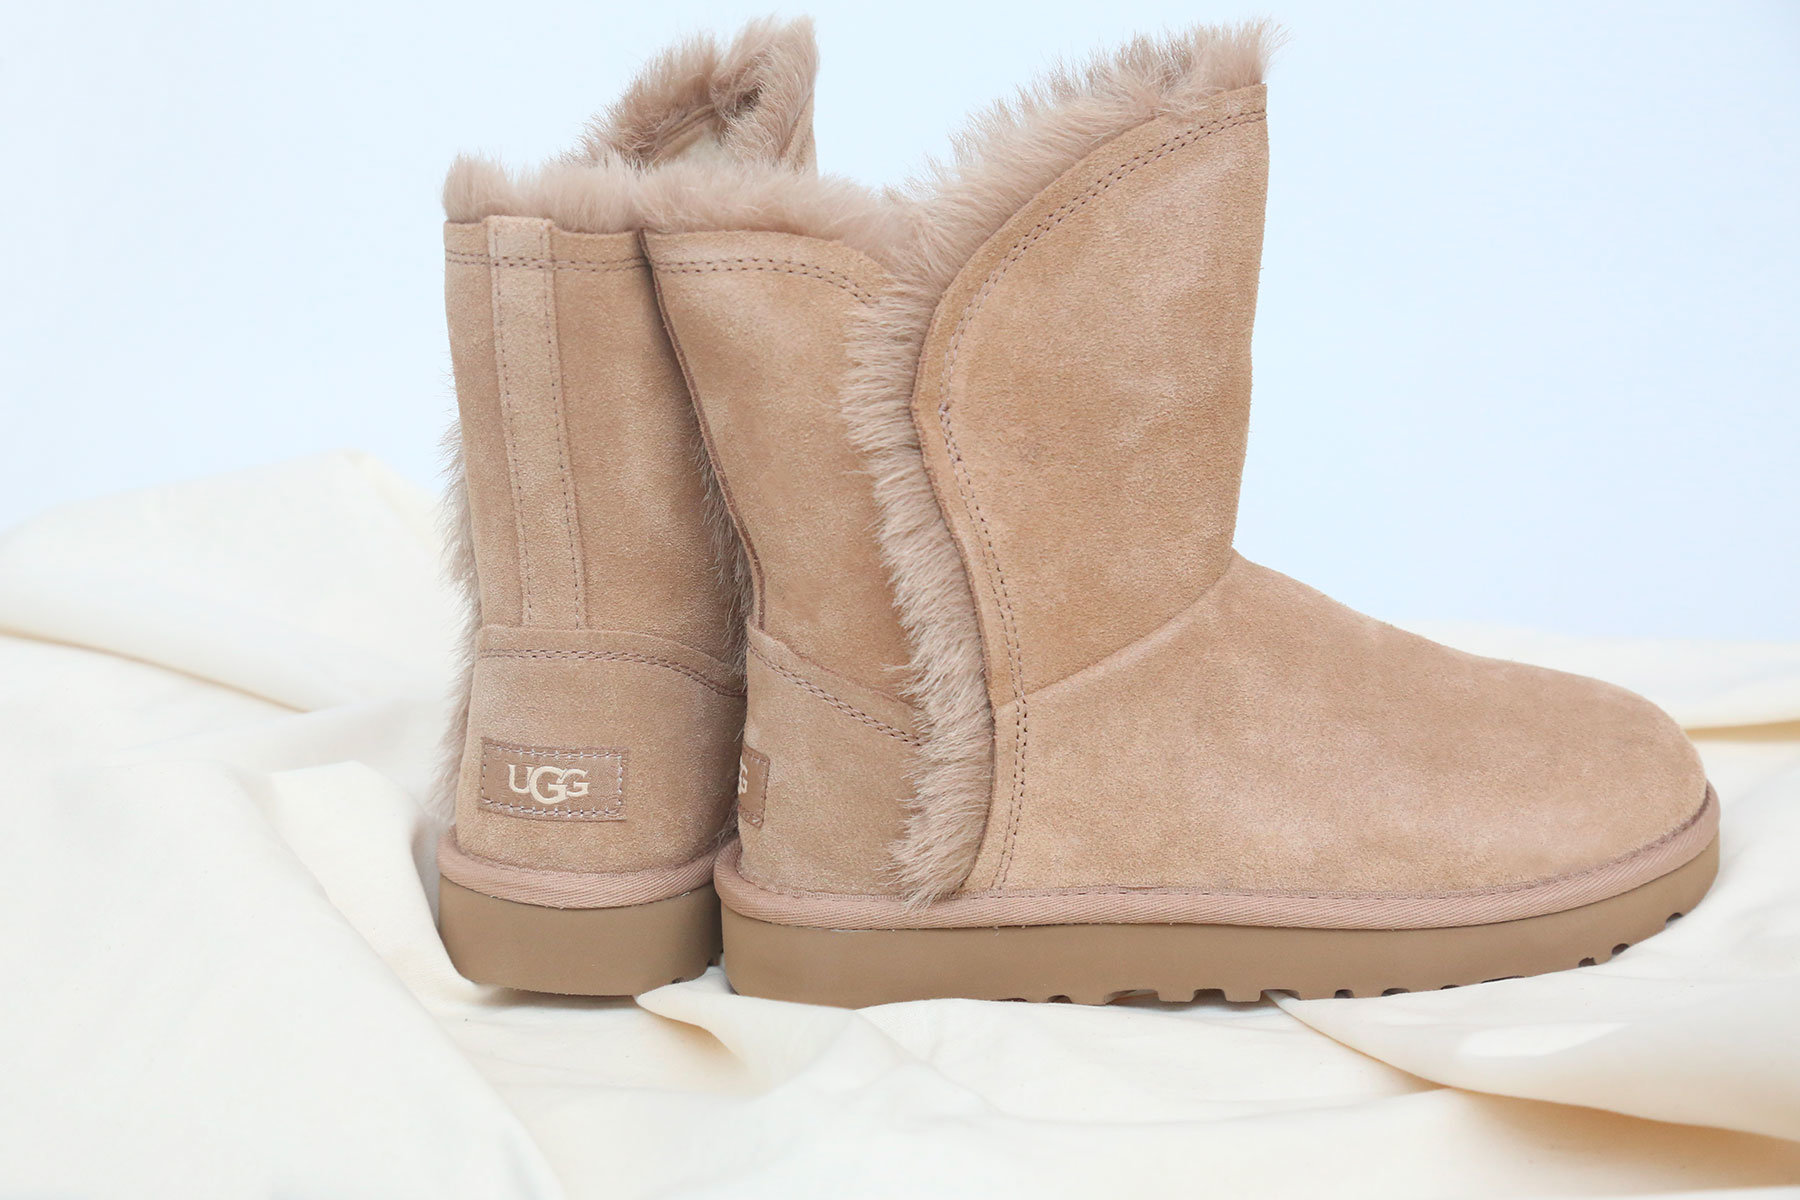 buy ugg boots cheap